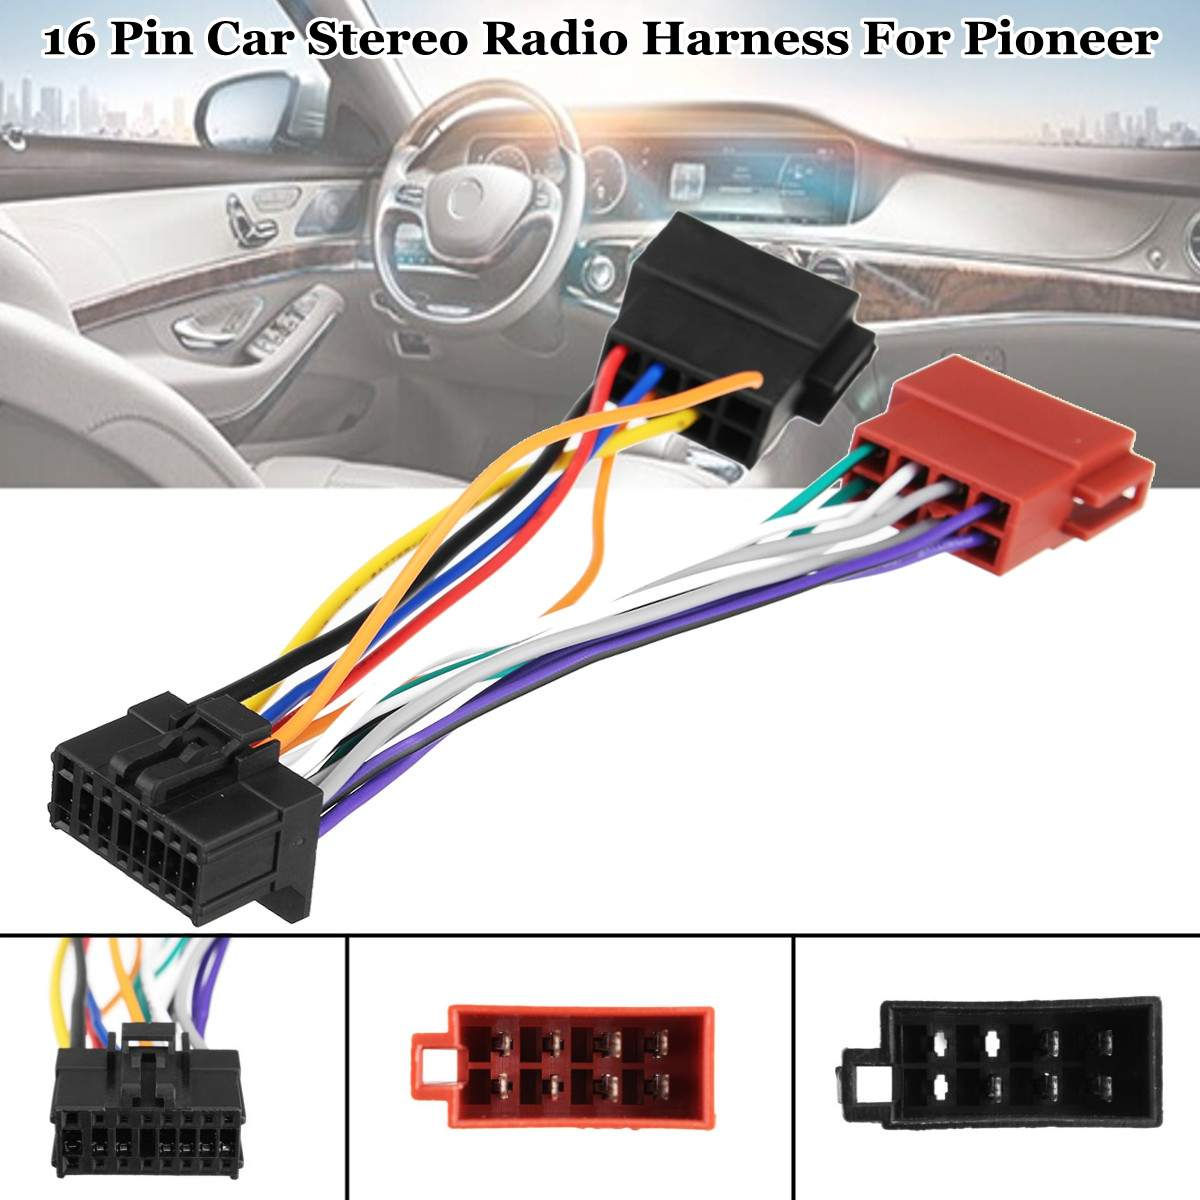 US $2.47 10% OFF|Car Stereo Radio ISO Wiring Harness Connector 16 Pin on custom motorcycle wiring harness, universal motorcycle wiring harness, triumph motorcycle wiring harness, honda motorcycle wiring harness,